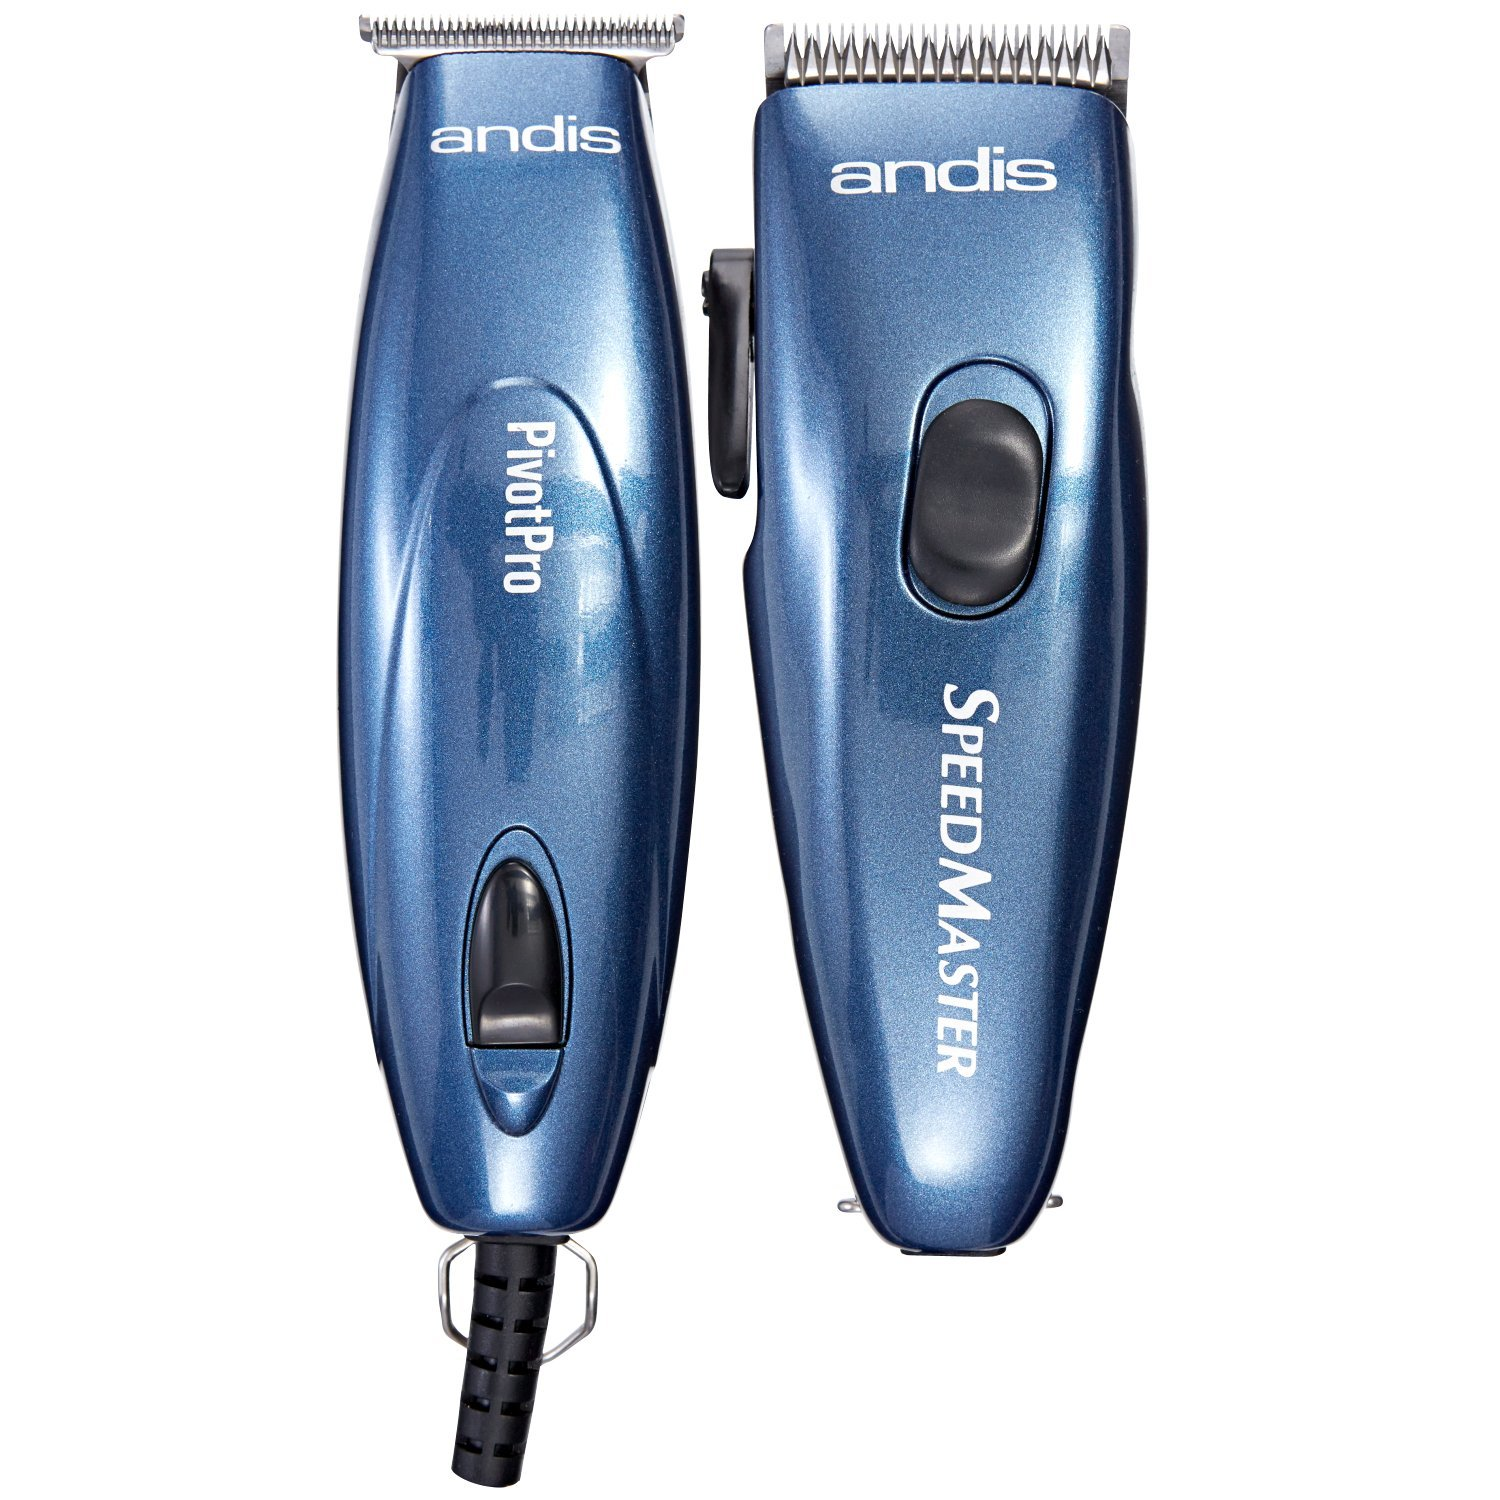 Andis LIGHTWEIGHT Men's Hair Clippers and Hair T-BLADE Trimmer Combo Set